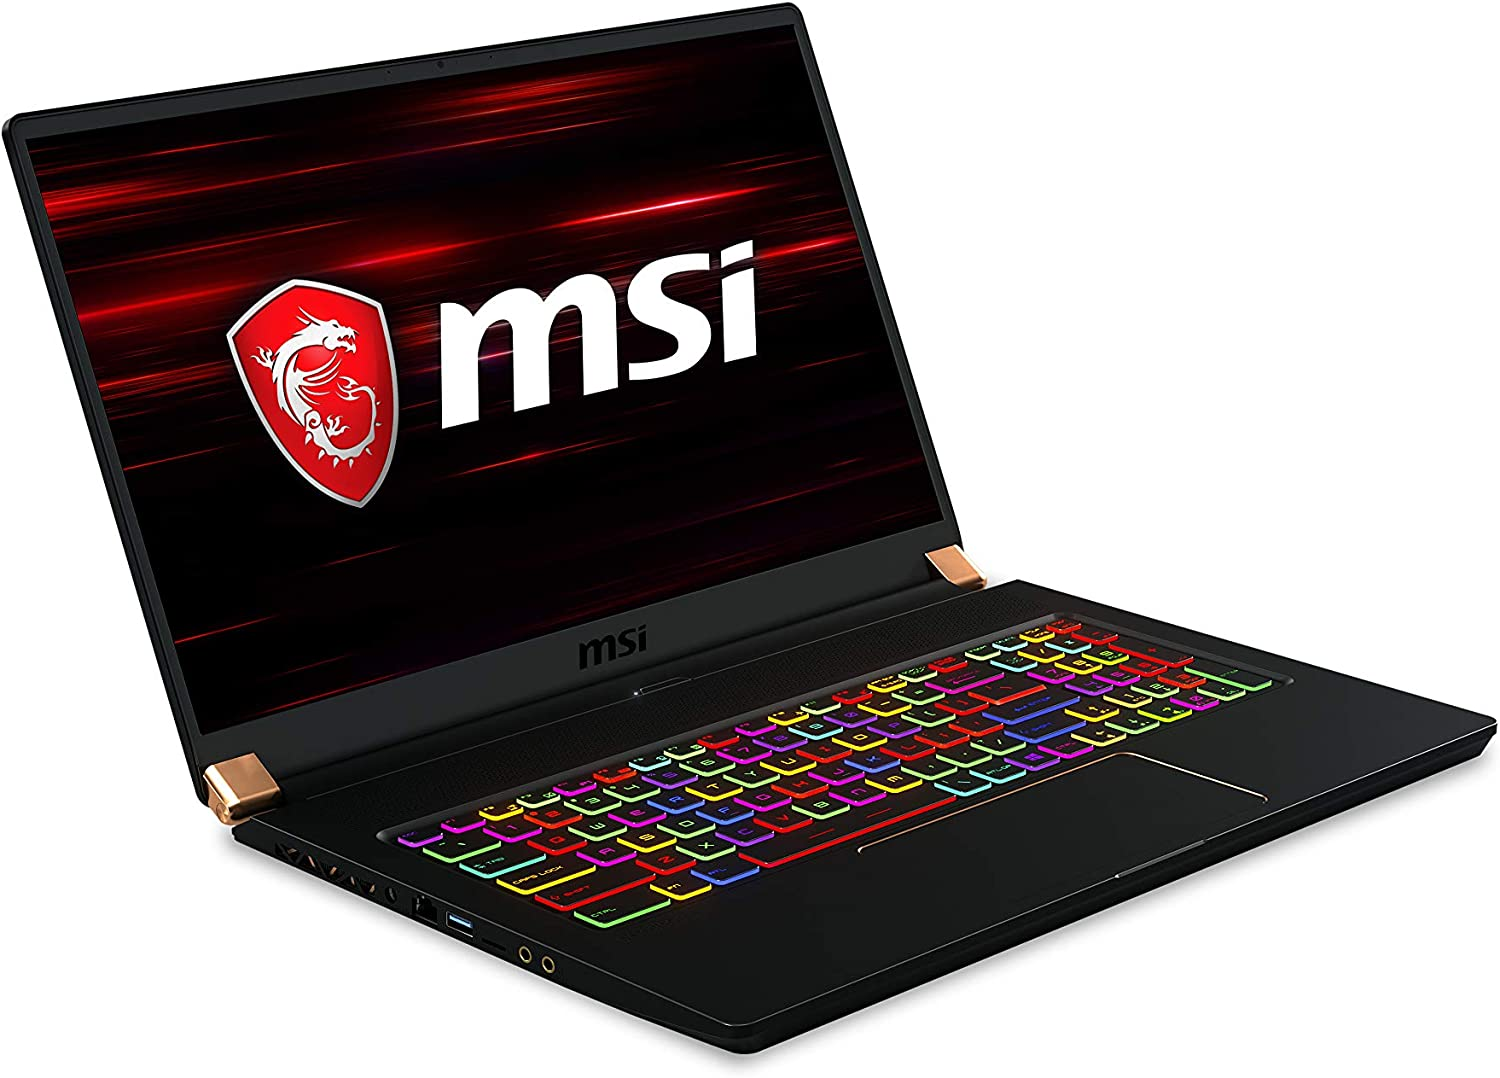 "MSI GS75 Stealth 10SGS-271 17.3"" 300Hz 3ms Ultra Thin and Light Gaming Laptop Intel Core i7-10750HK RTX 2080 Super 32GB 512GB NVMe SSD Win10PRO VR Ready"